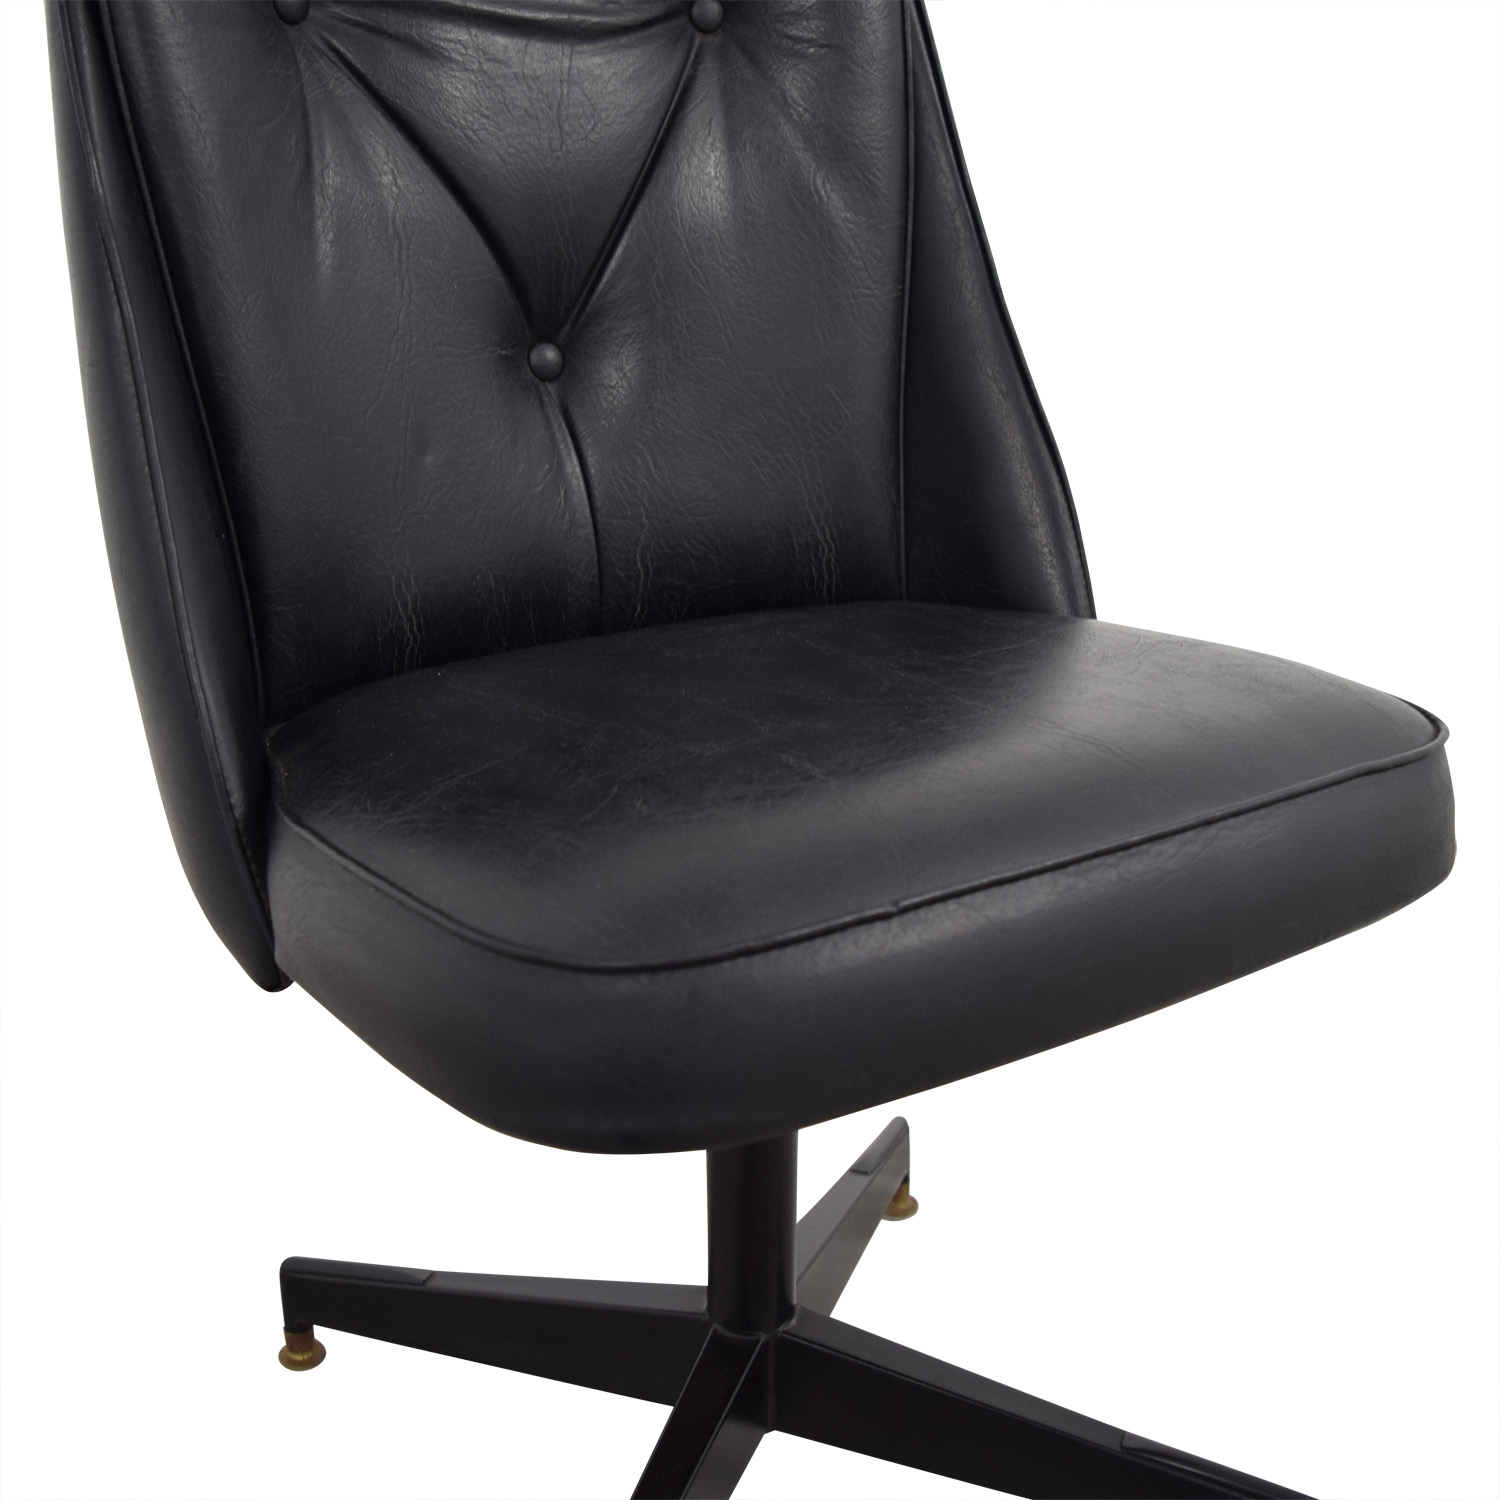 Black Leather Swivel Office Desk Chair dimensions